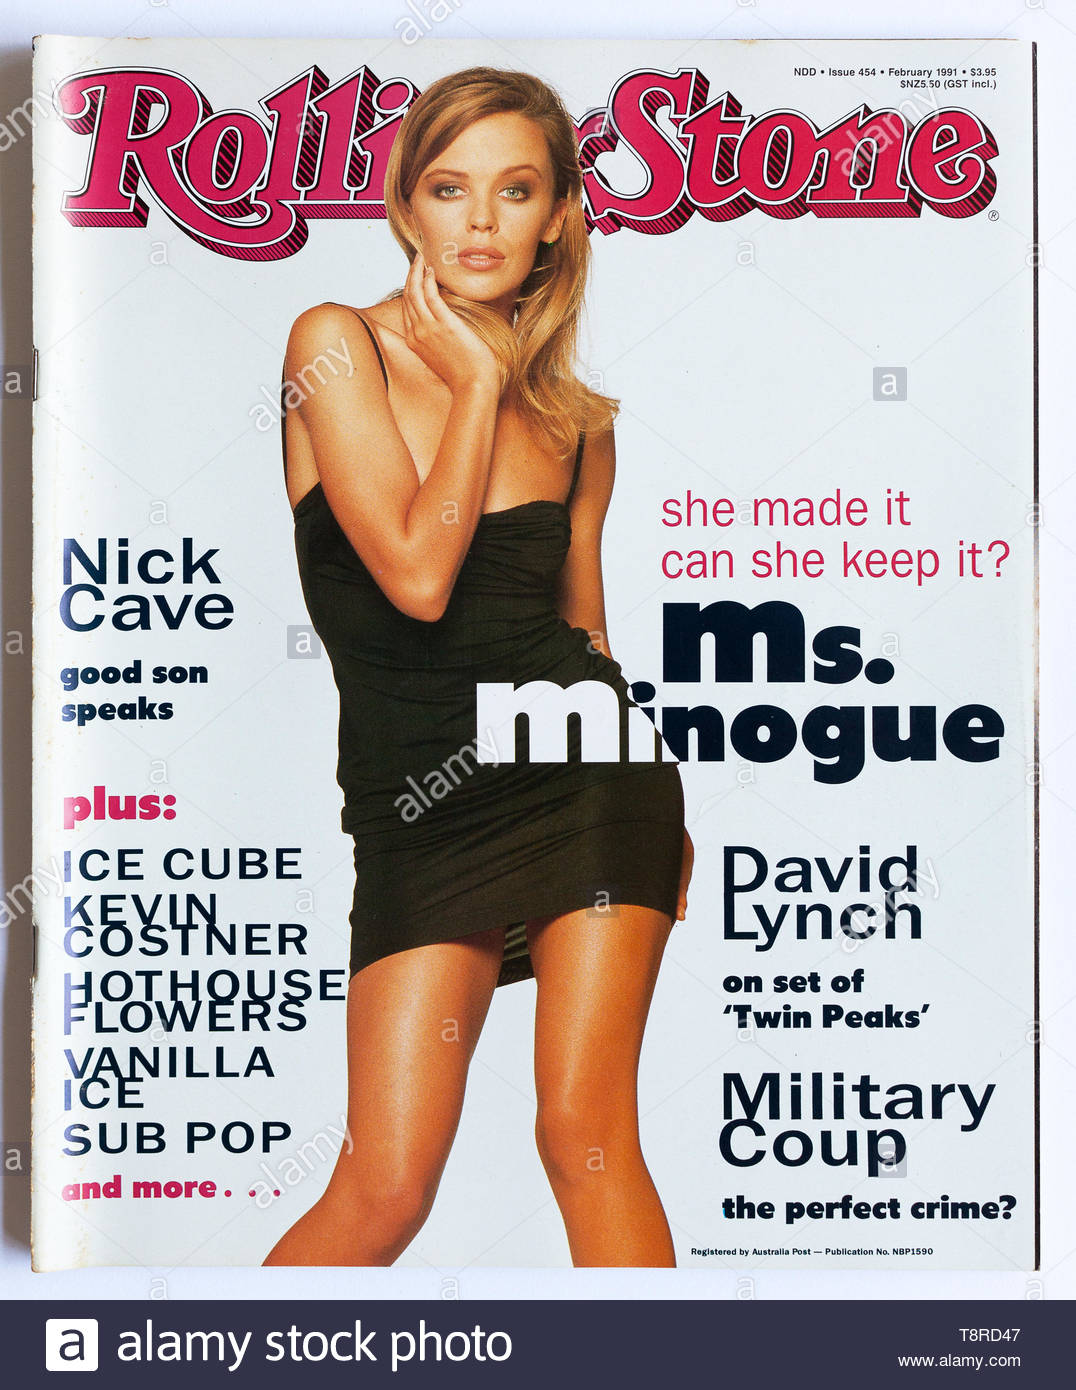 The Cover Of Rolling Stone Magazine Issue 454 February 1991 Featuring Kylie Minogue Stock Photo Alamy